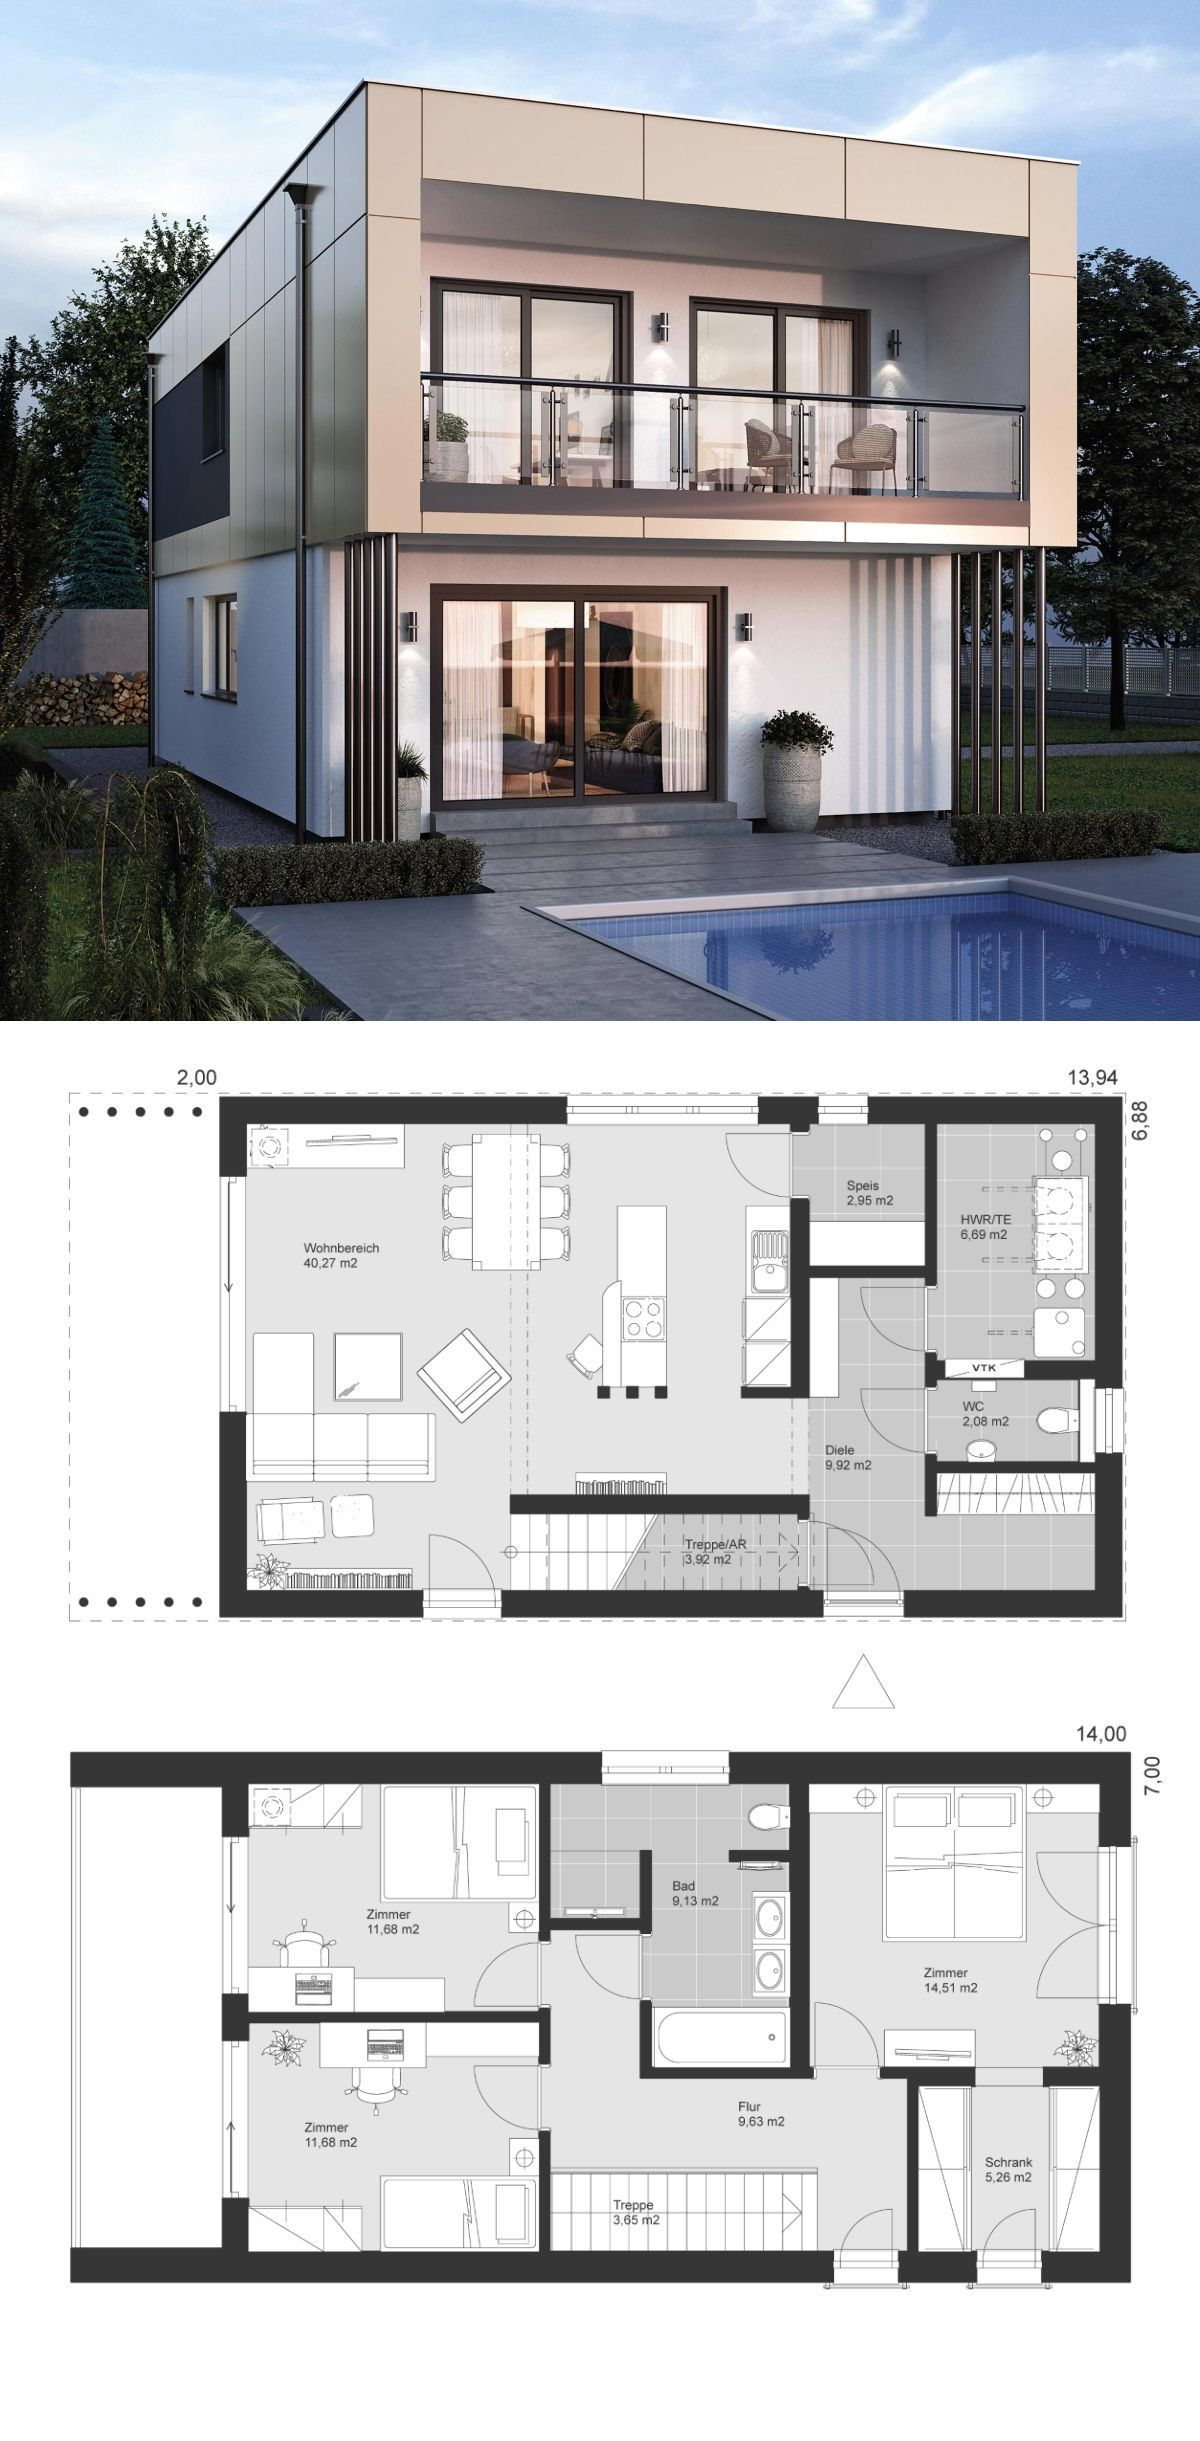 Southernlivinghouseplans Com Bradford Bungalow Ii Narrow House Plans New House Plans Small House Plans